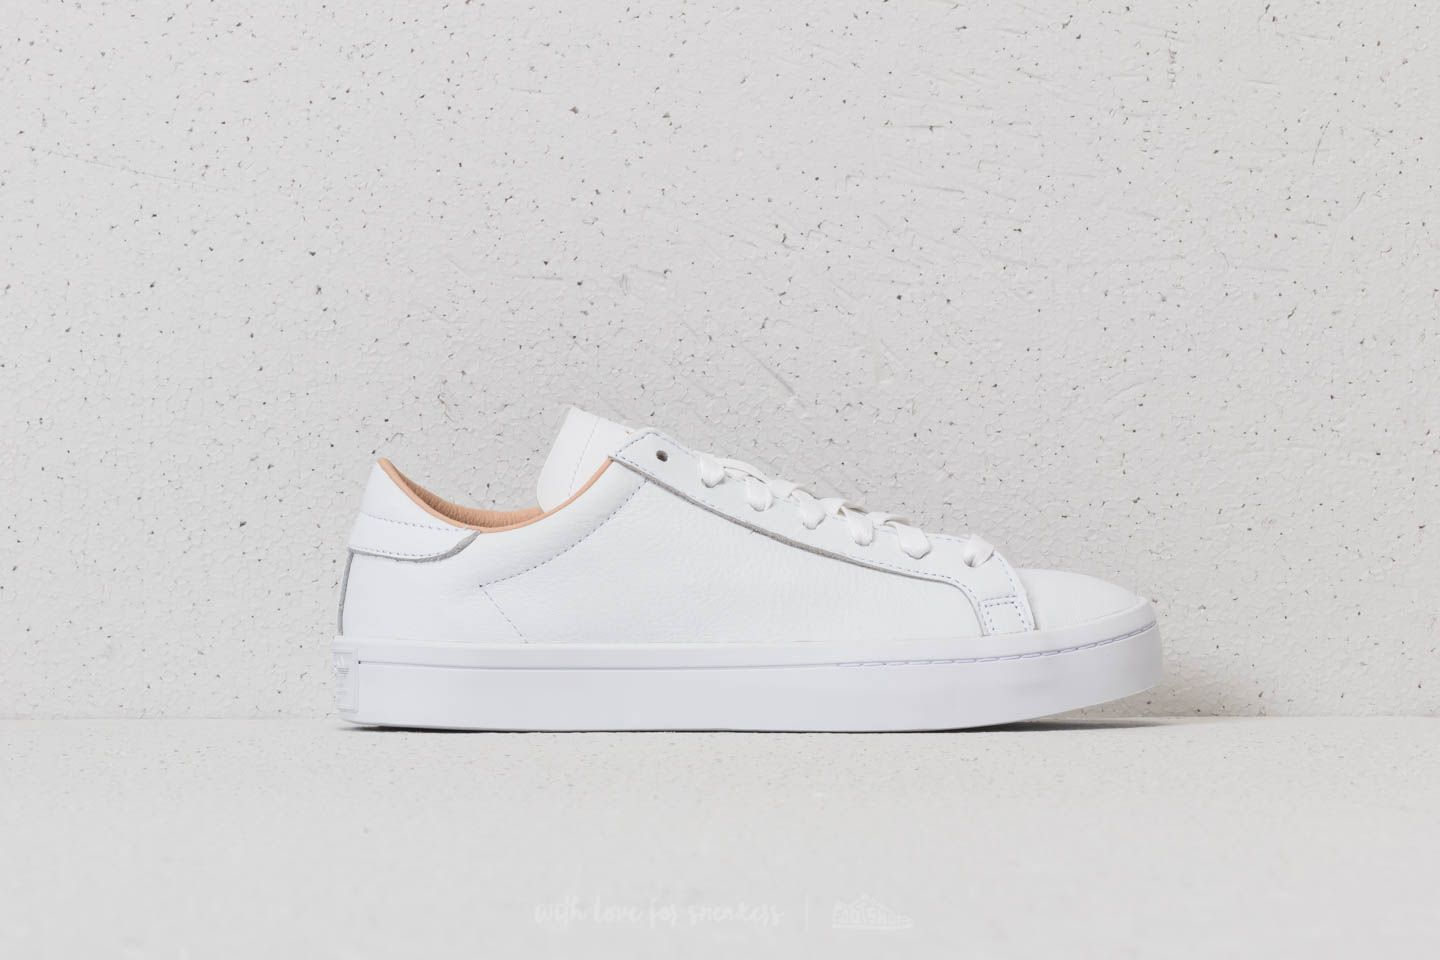 online store ff5e2 bb243 adidas Courtvantage Ftw White Ftw White Supplier Colour at a great price  99 €